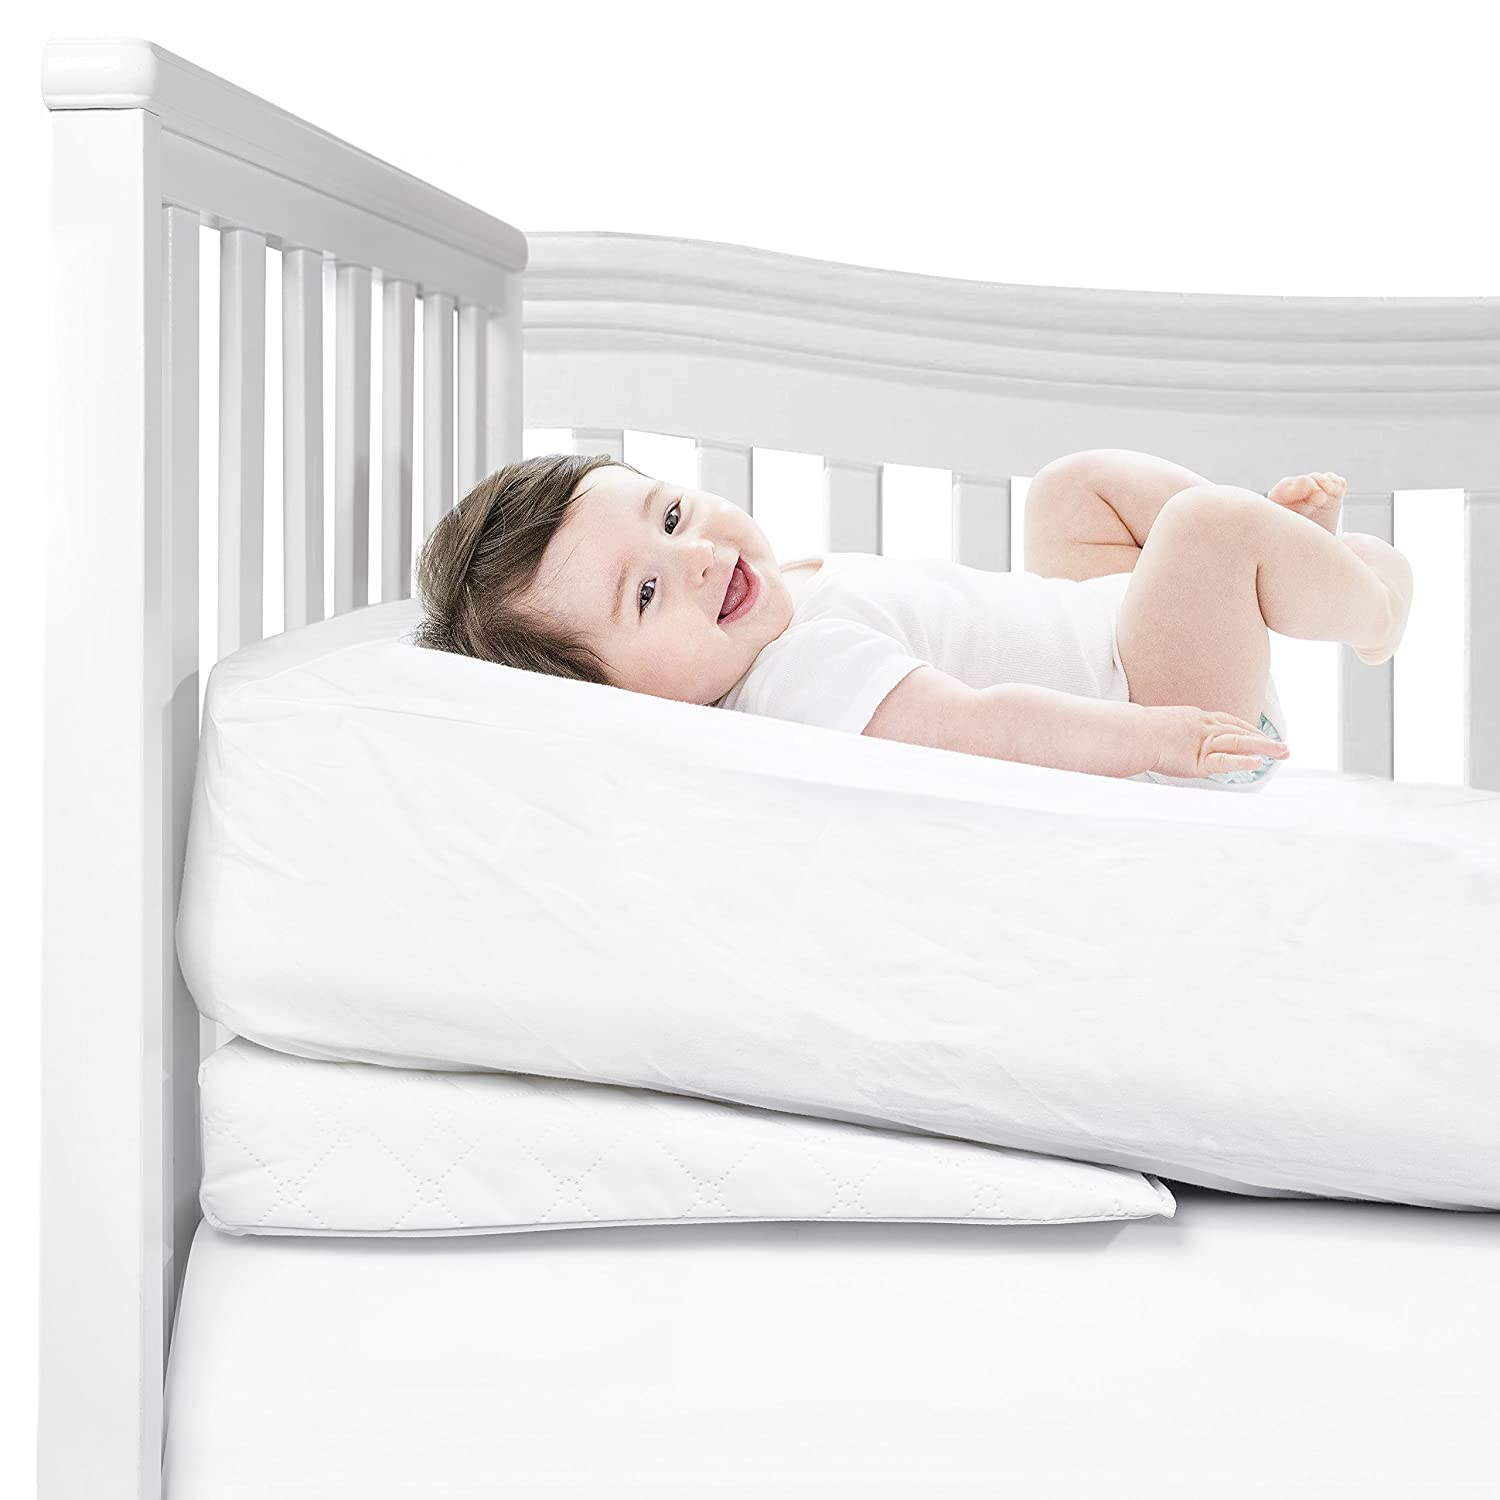 Comfy Rise Deluxe Crib Wedge Baby Delight BD06060